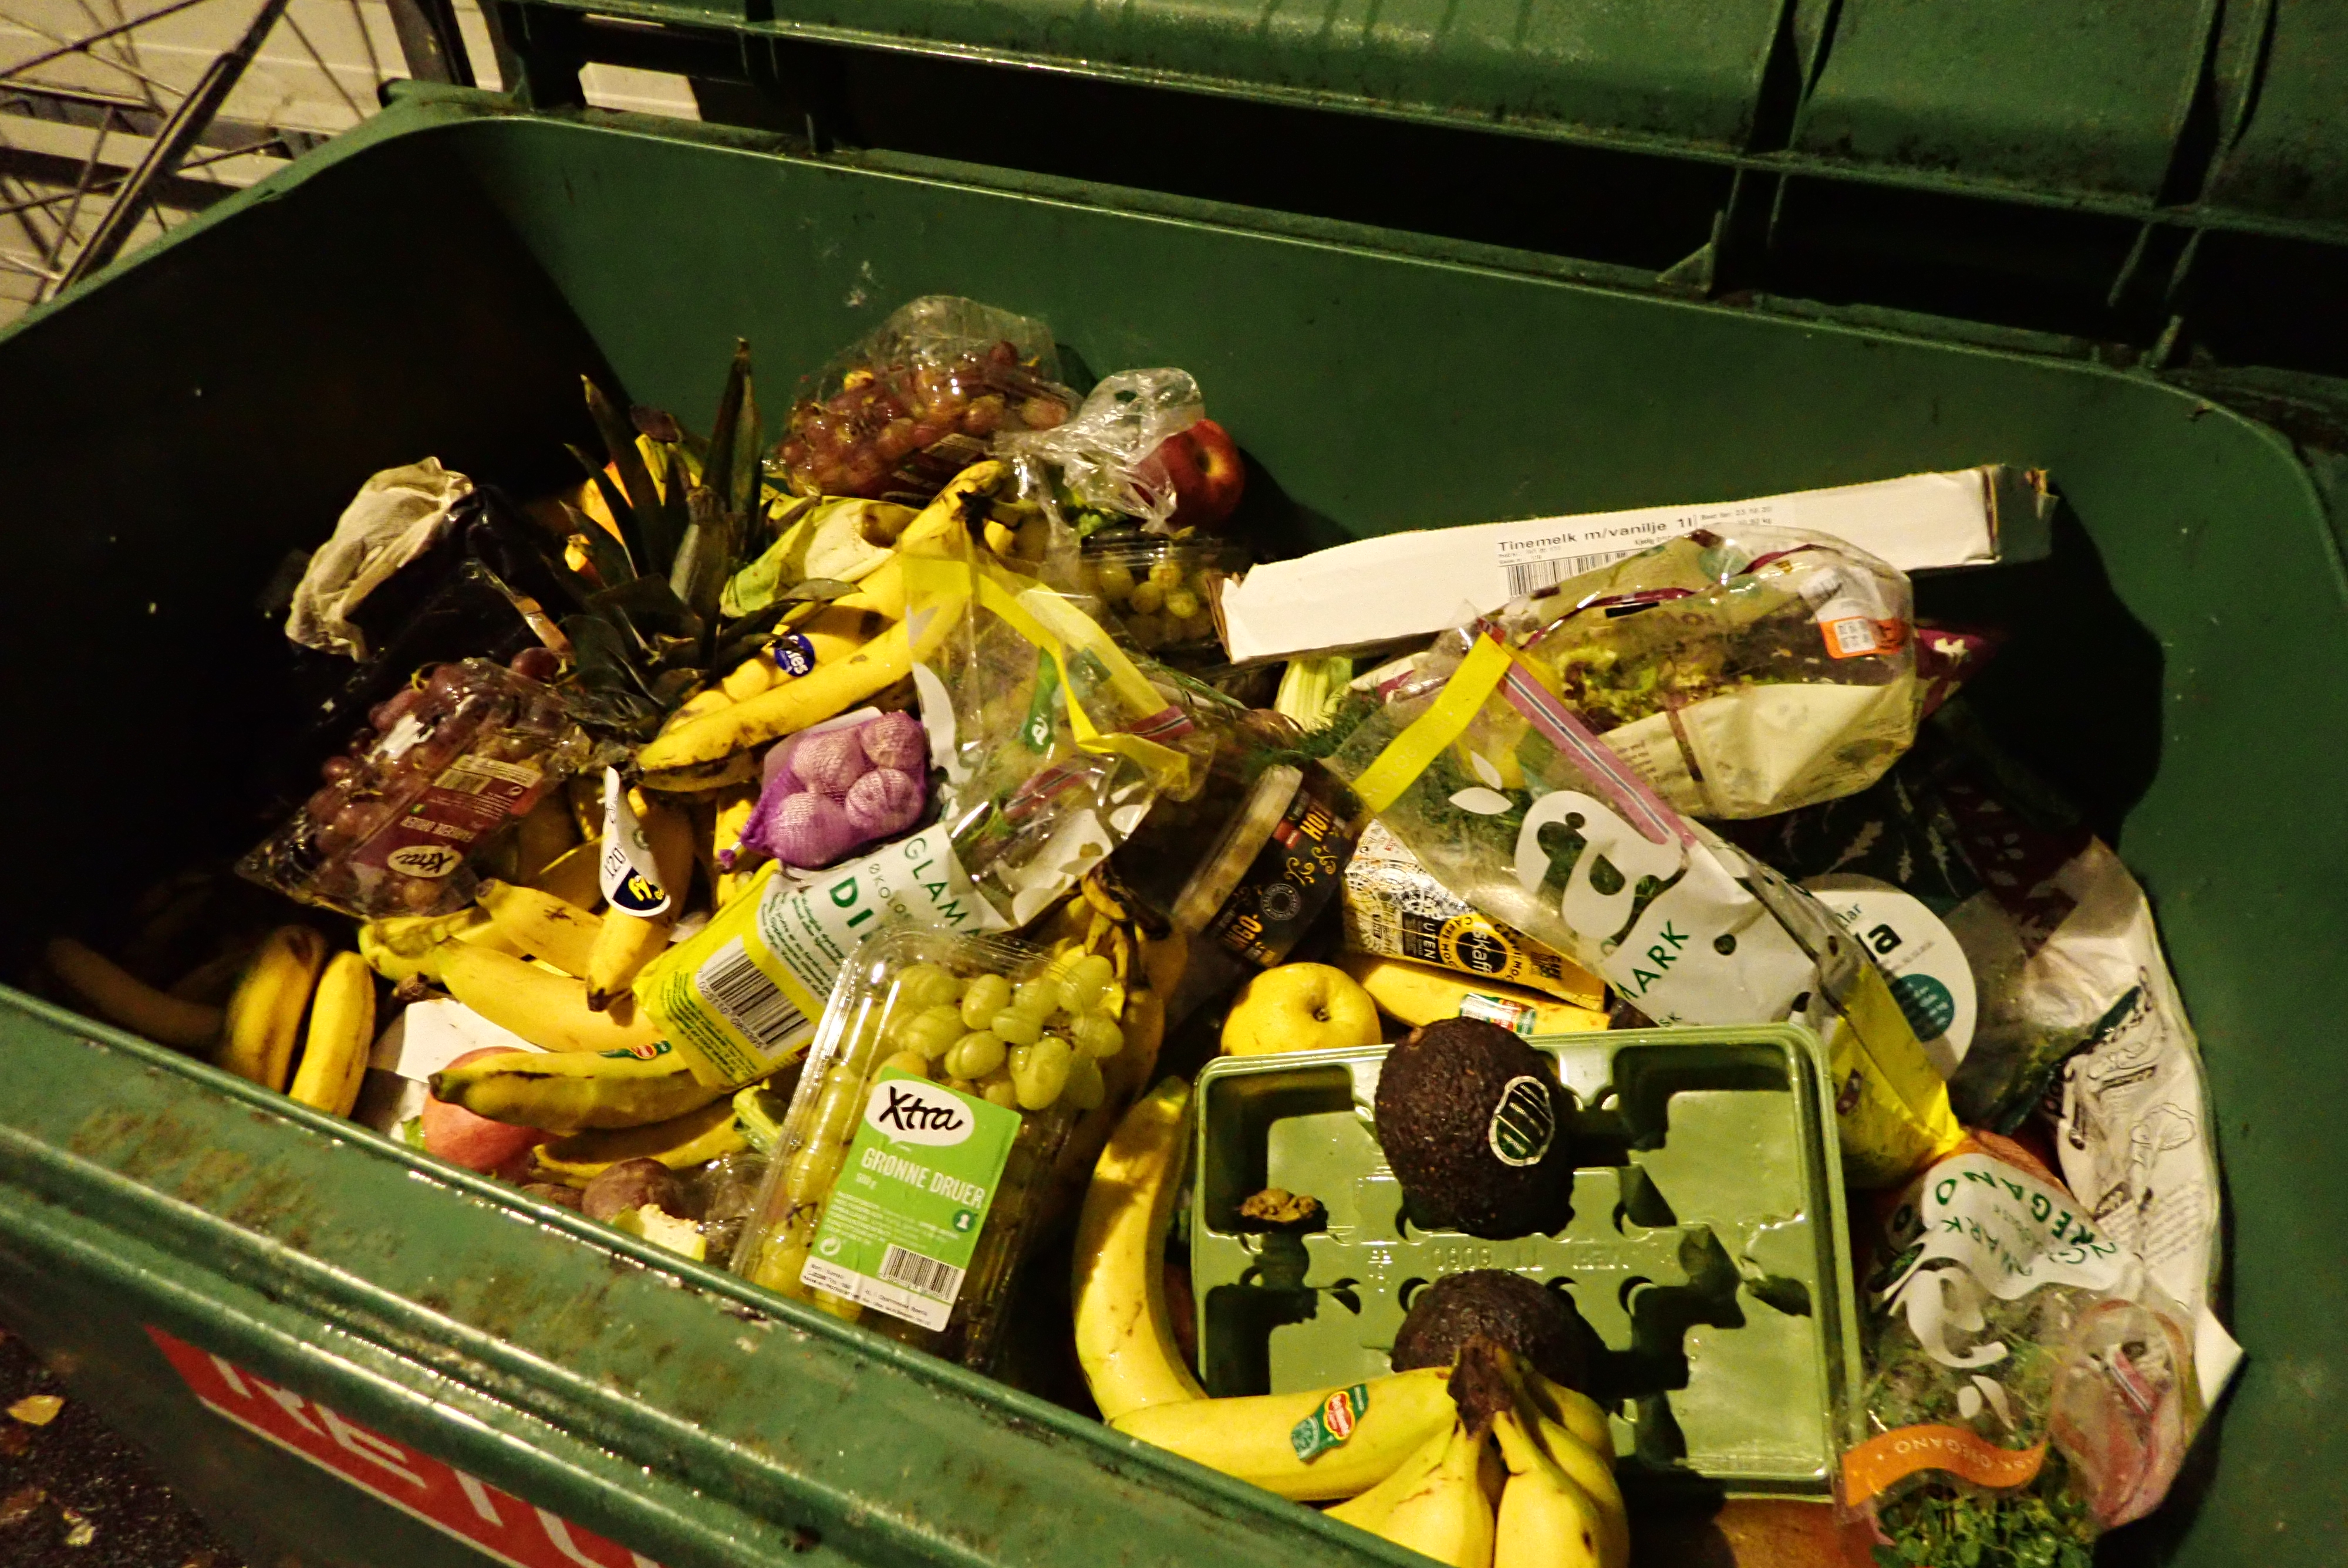 a dumpster full of discarded food